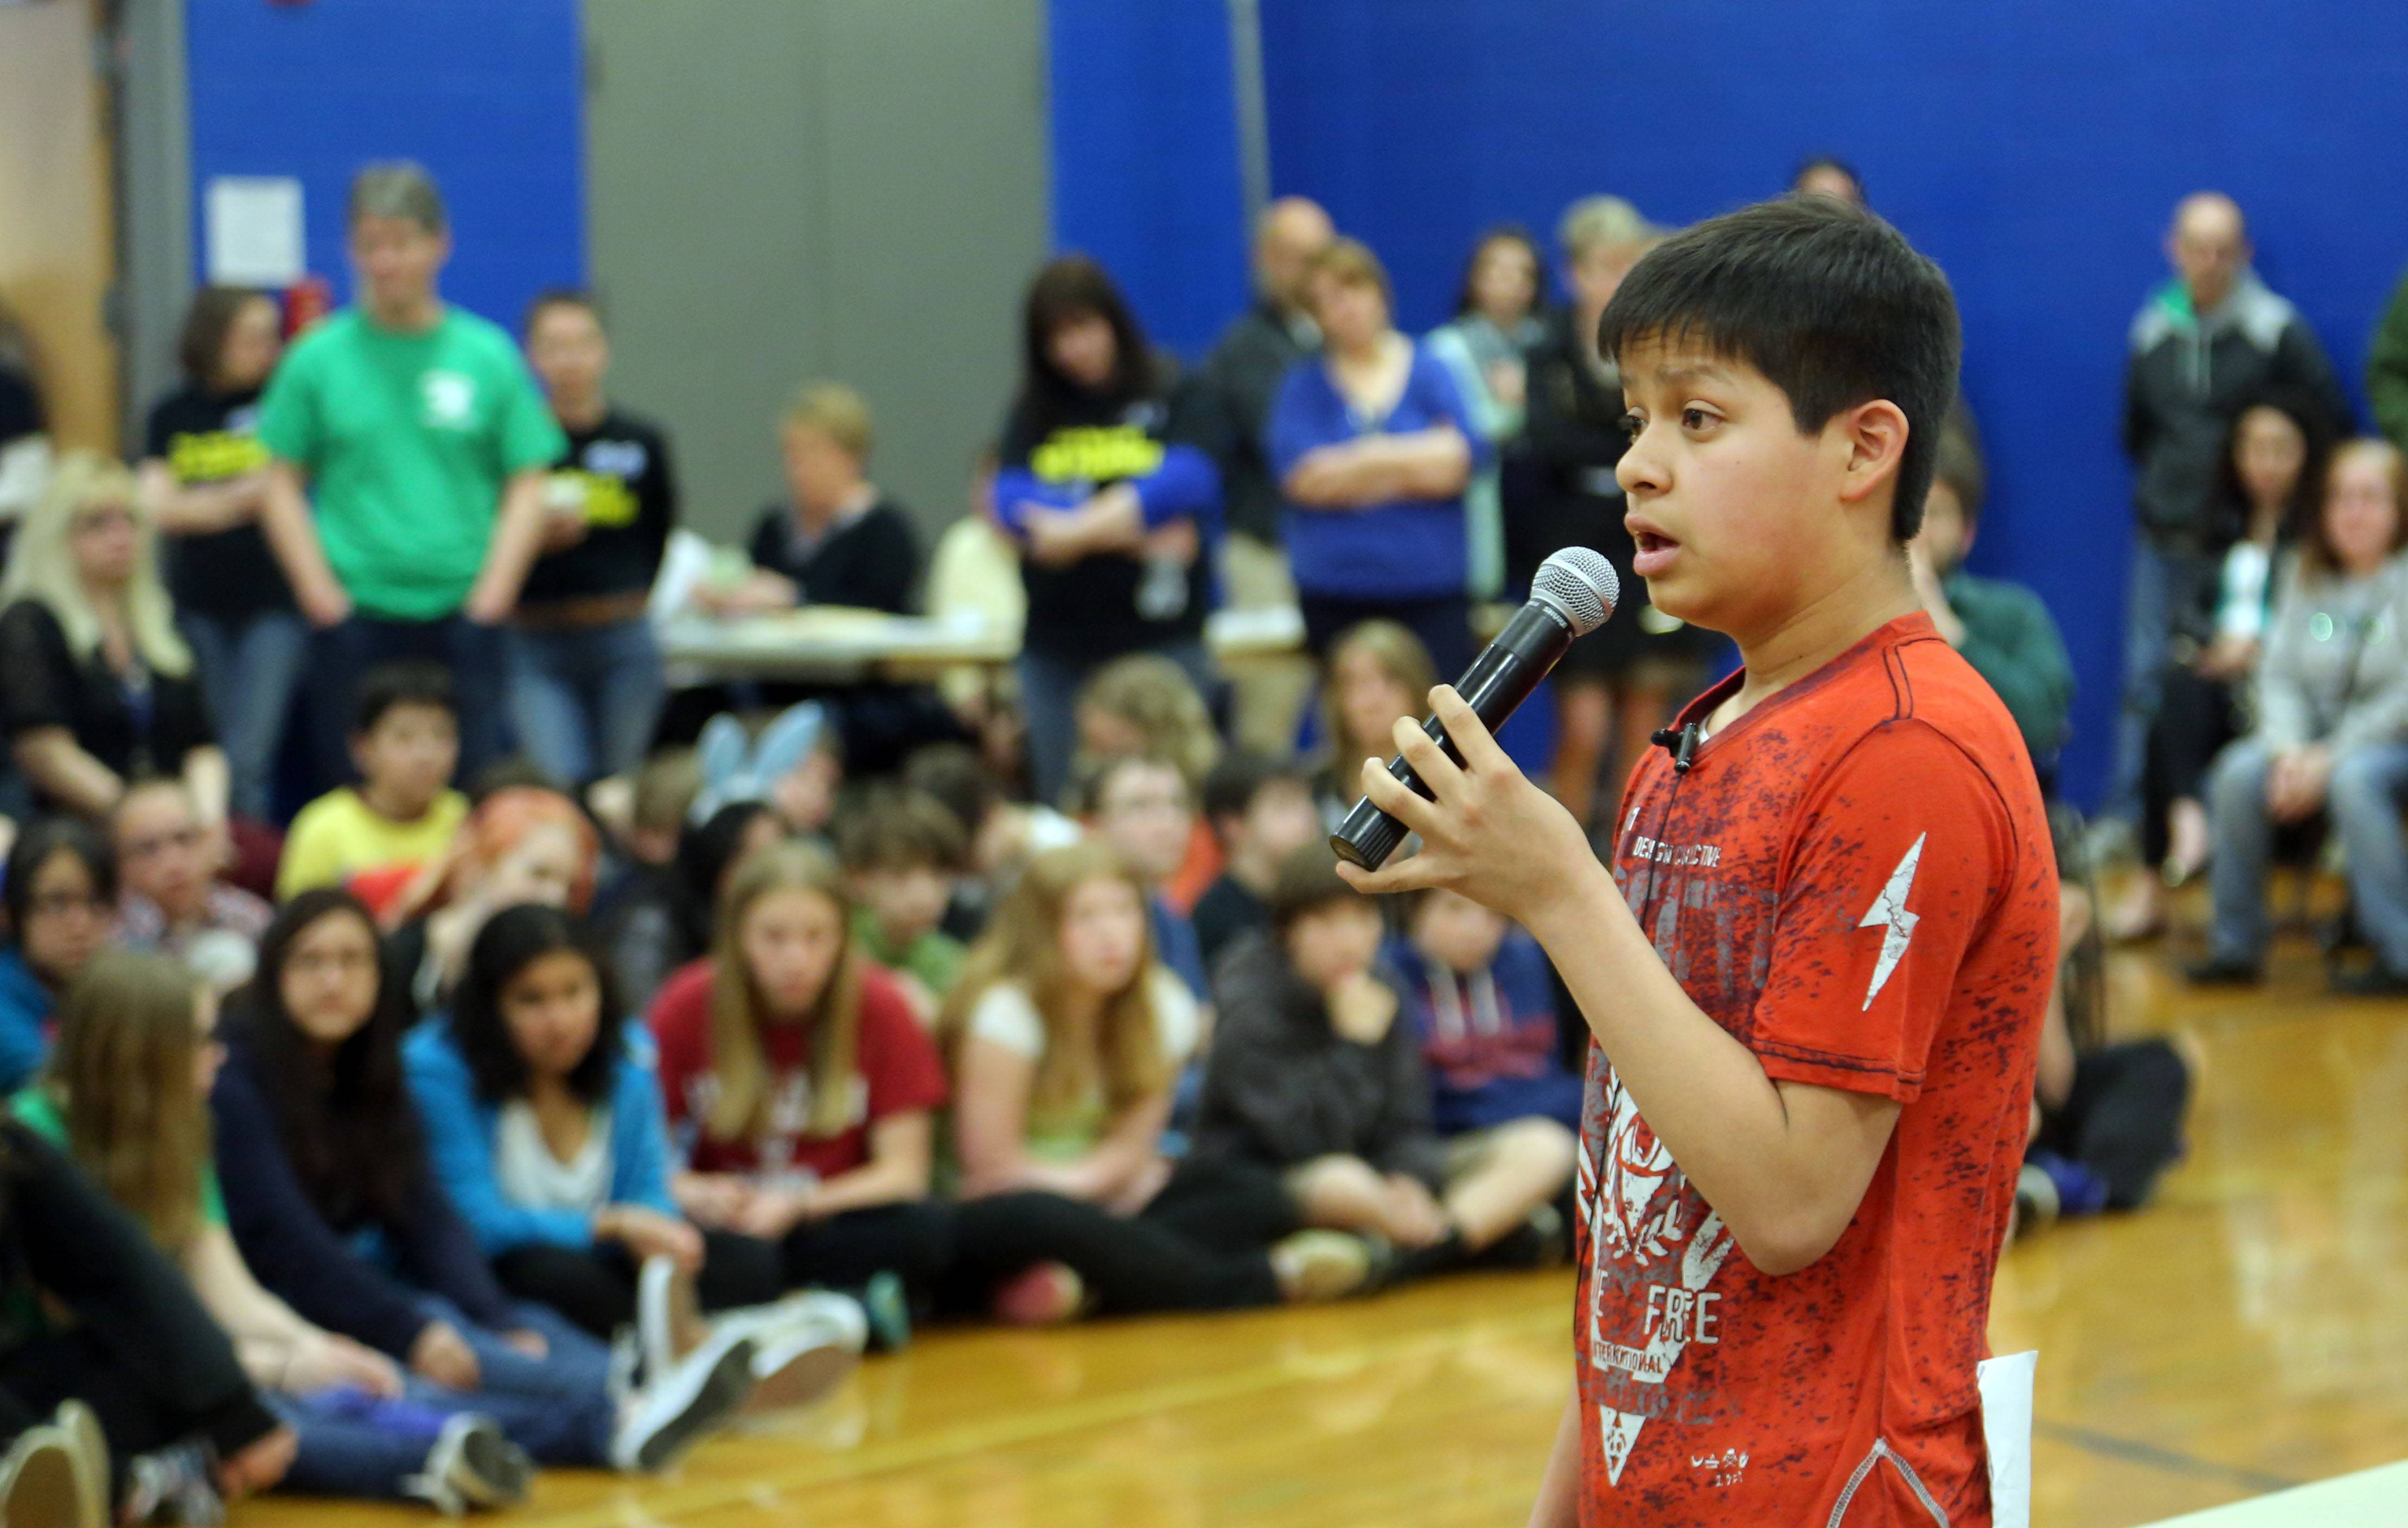 Adrian Salvador, 13, shares his battle with cancer Thursday during a St. Baldrick's assembly at Grayslake Middle School.